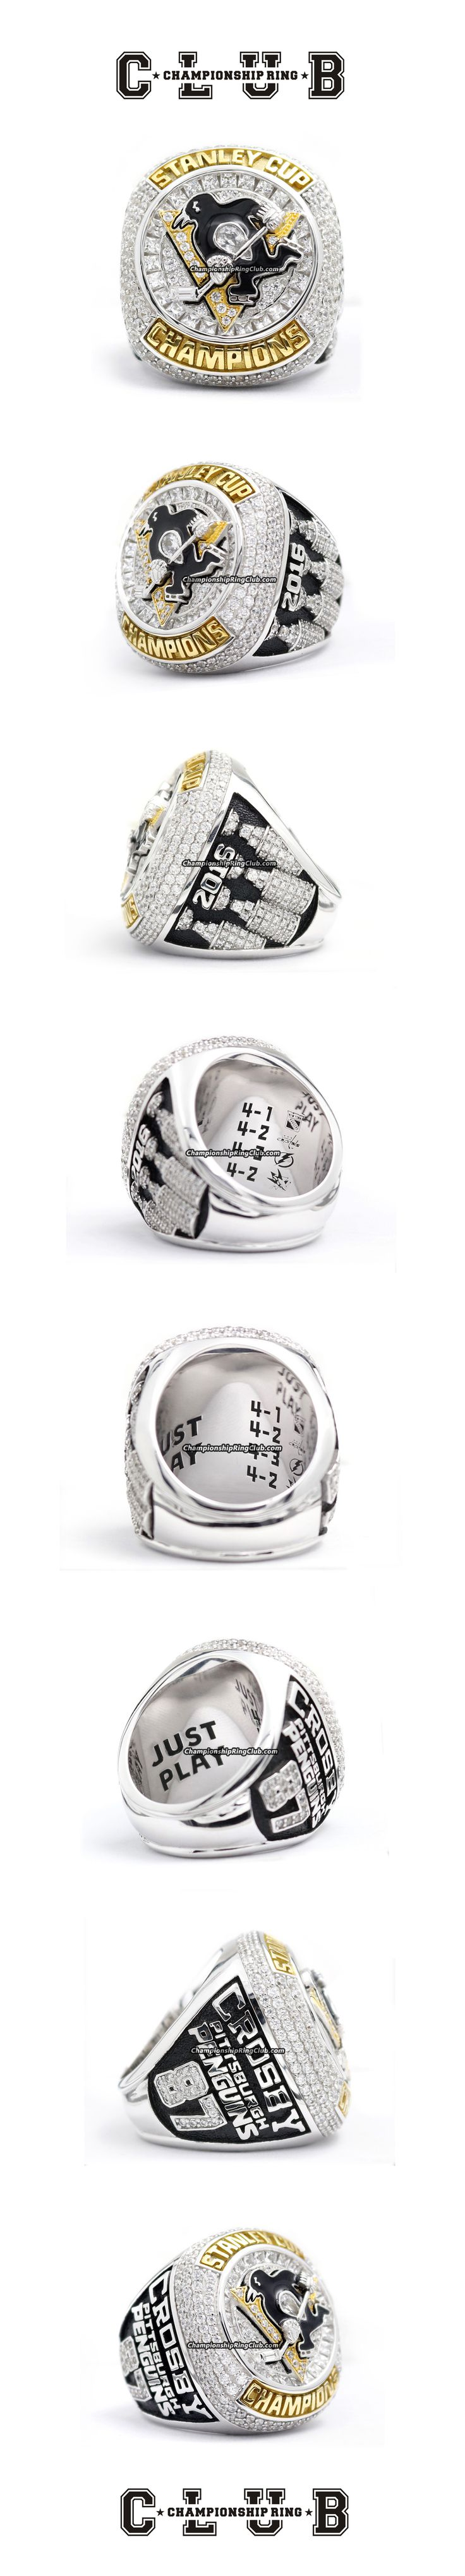 2016 Pittsburgh Penguins NHL Stanley Cup Championship Ring